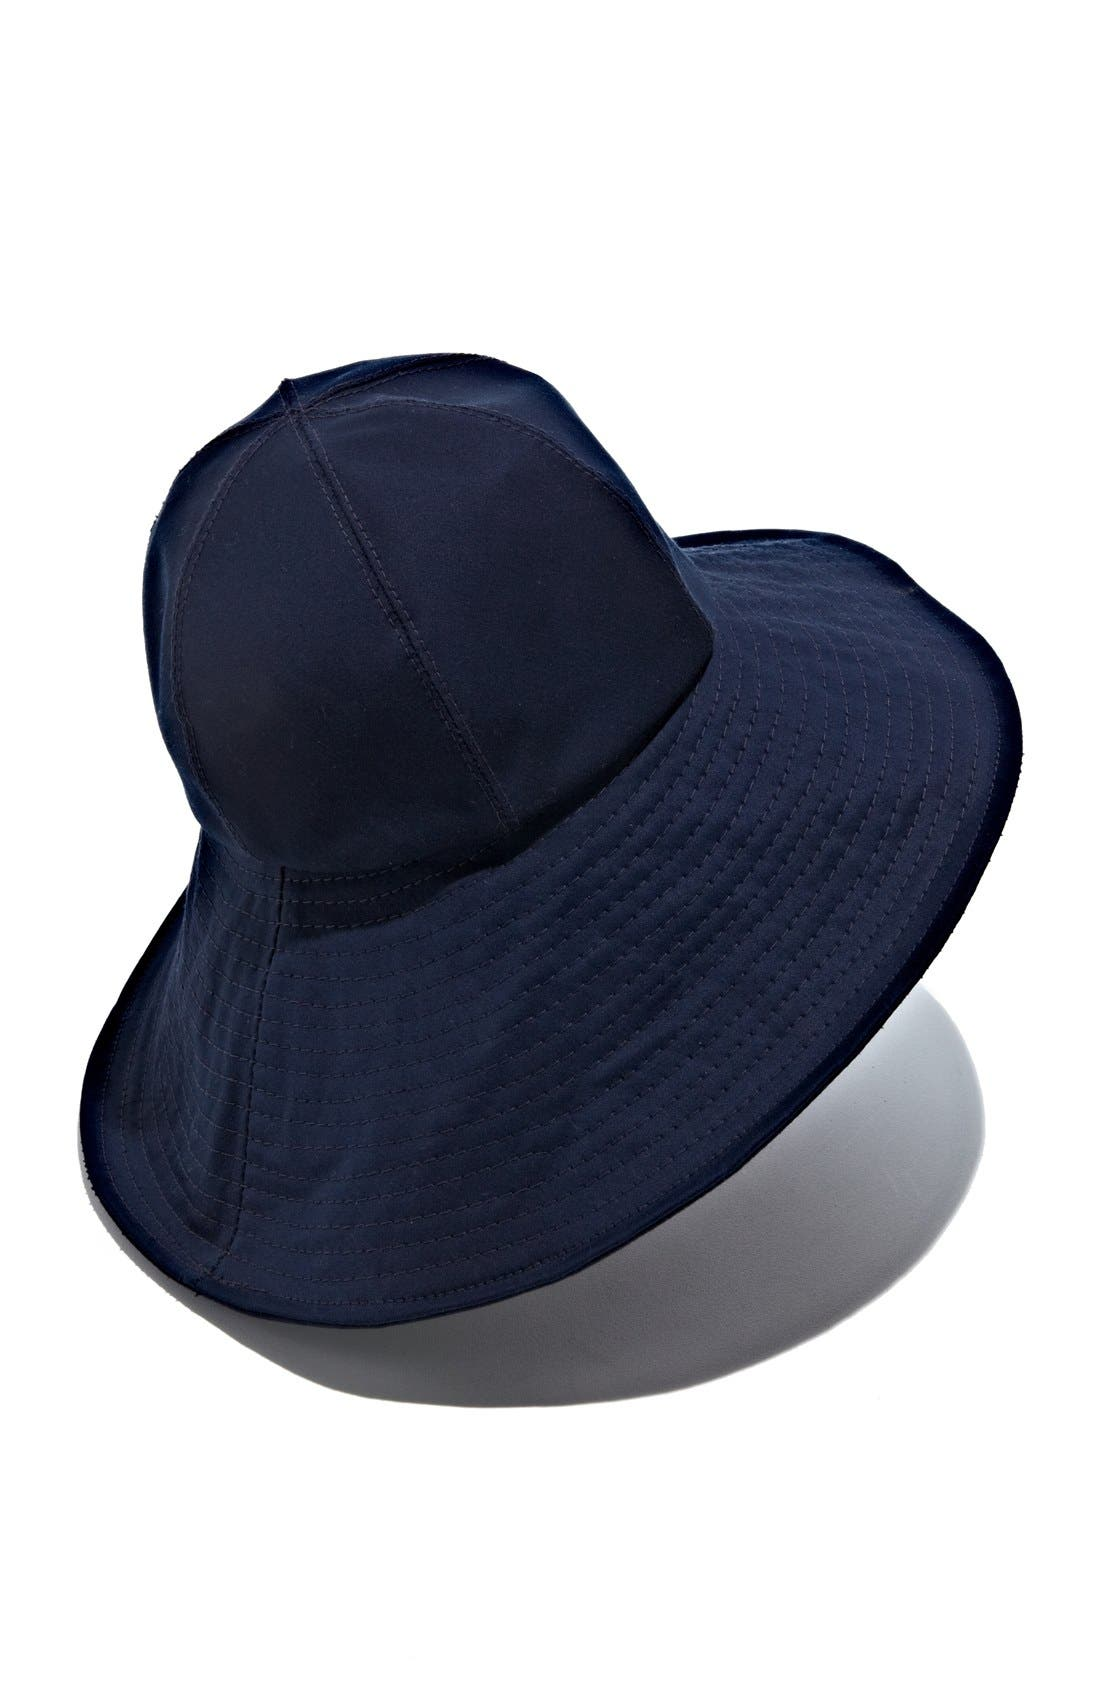 Main Image - Yestadt Millinery 'Vista' Fisherman Hat